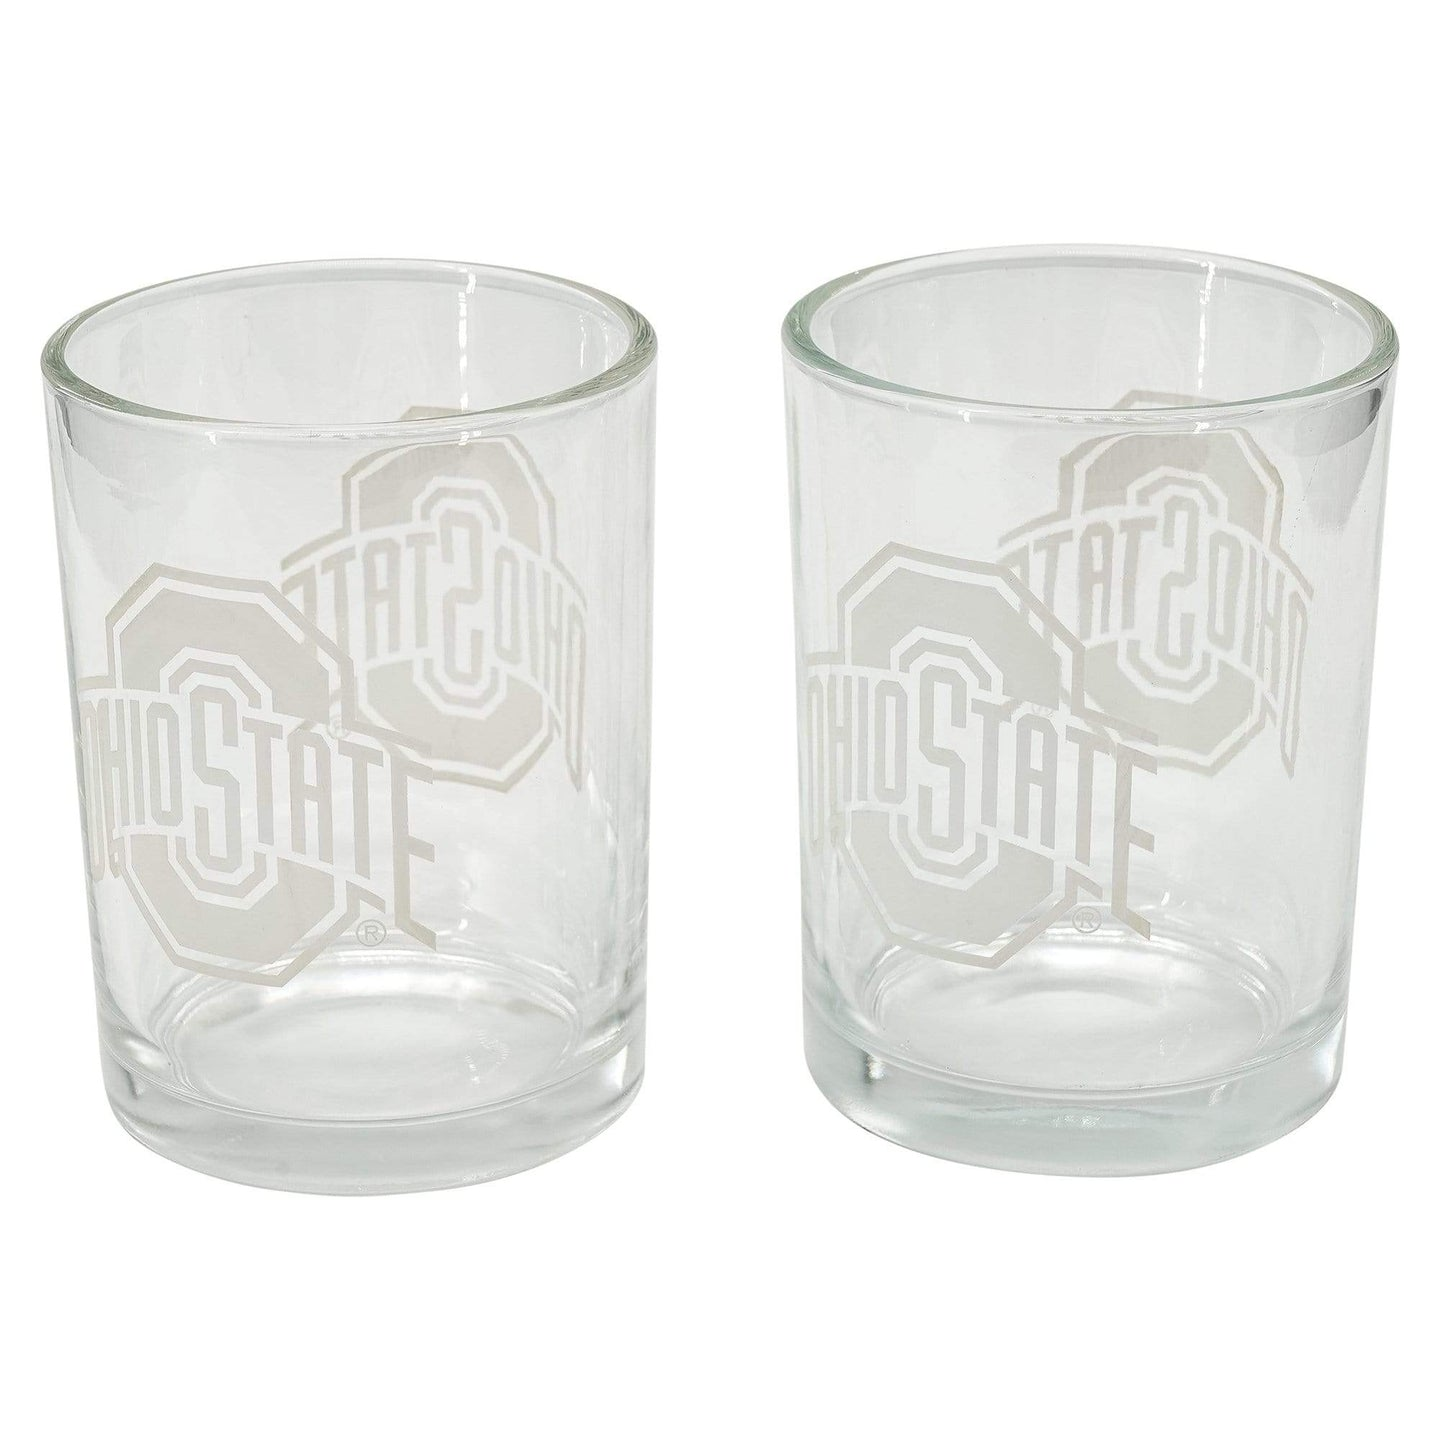 10 oz Frosted Athletic O Rocks Glasses - 2 Pack - Conrads College Gifts